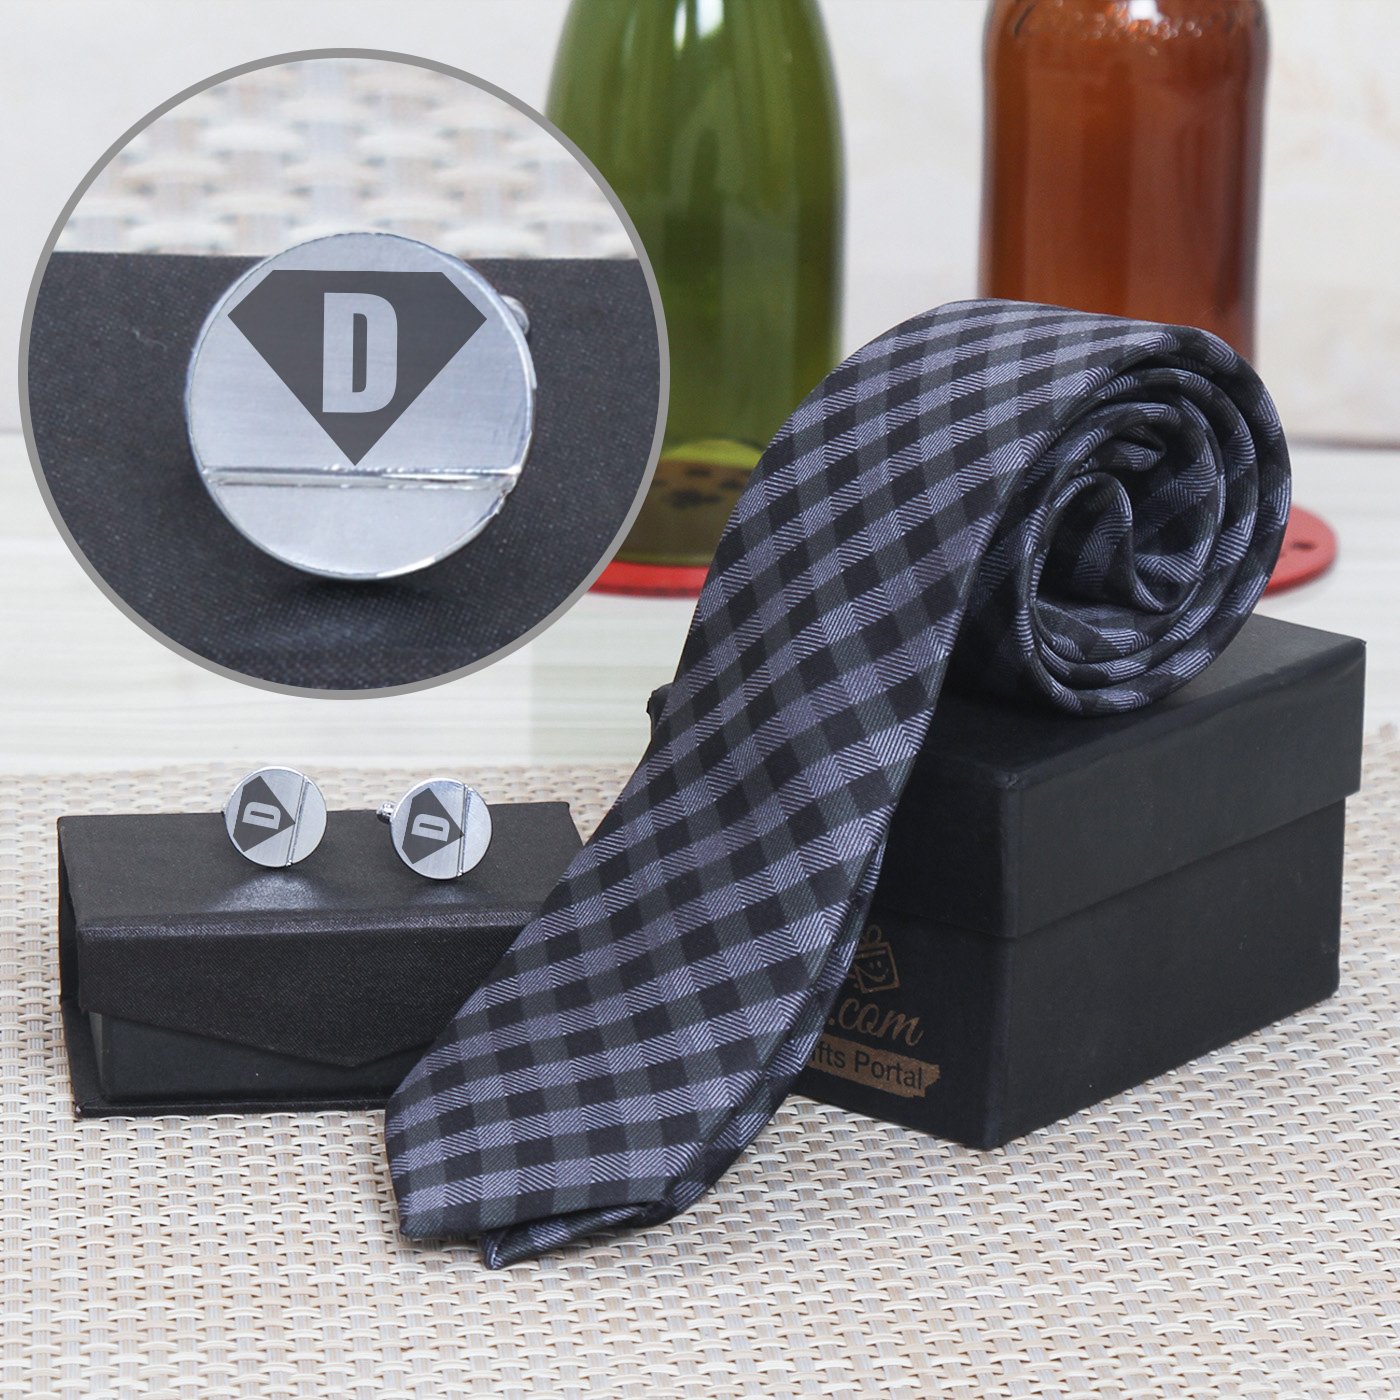 p-checkered-tie-with-personalized-cufflinks-95167-m-IGP